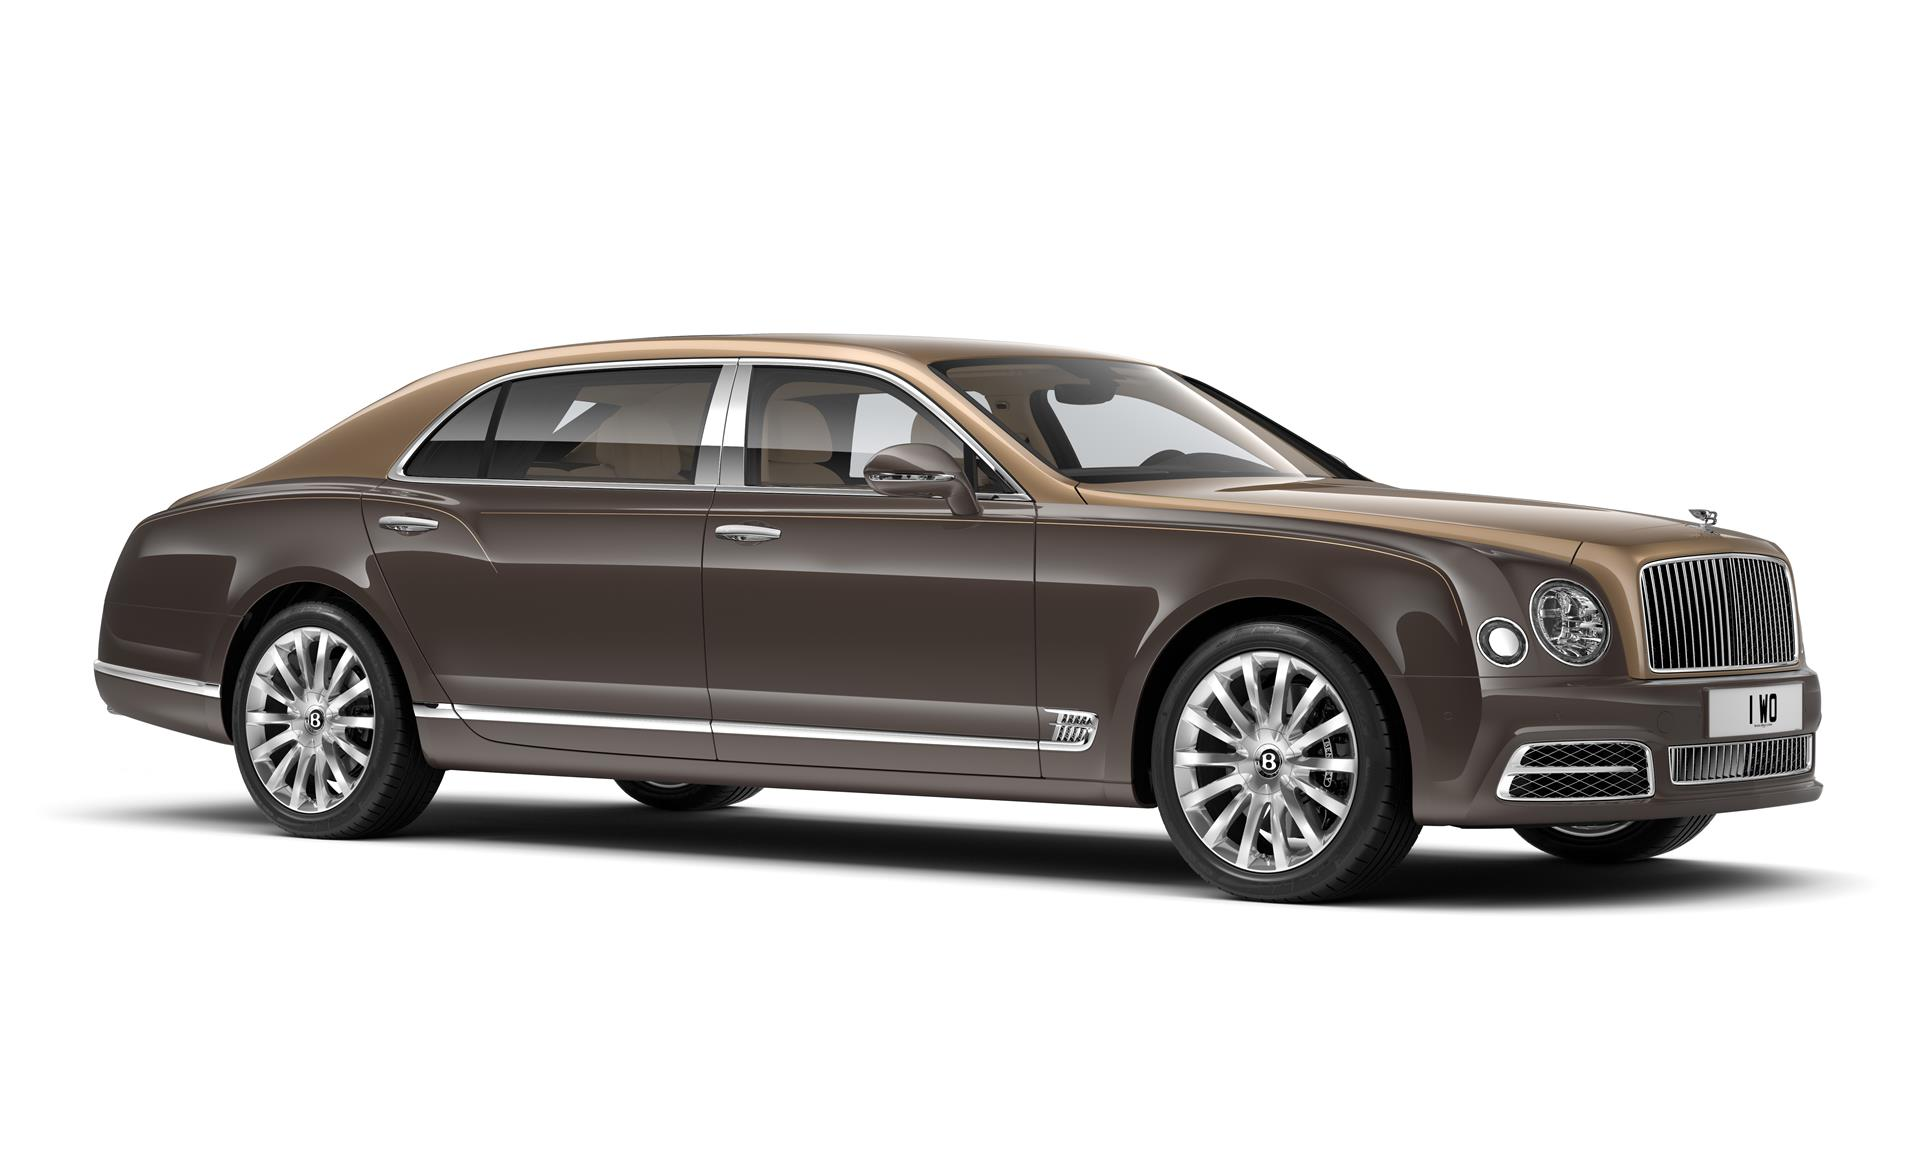 2016 bentley mulsanne first edition. Black Bedroom Furniture Sets. Home Design Ideas